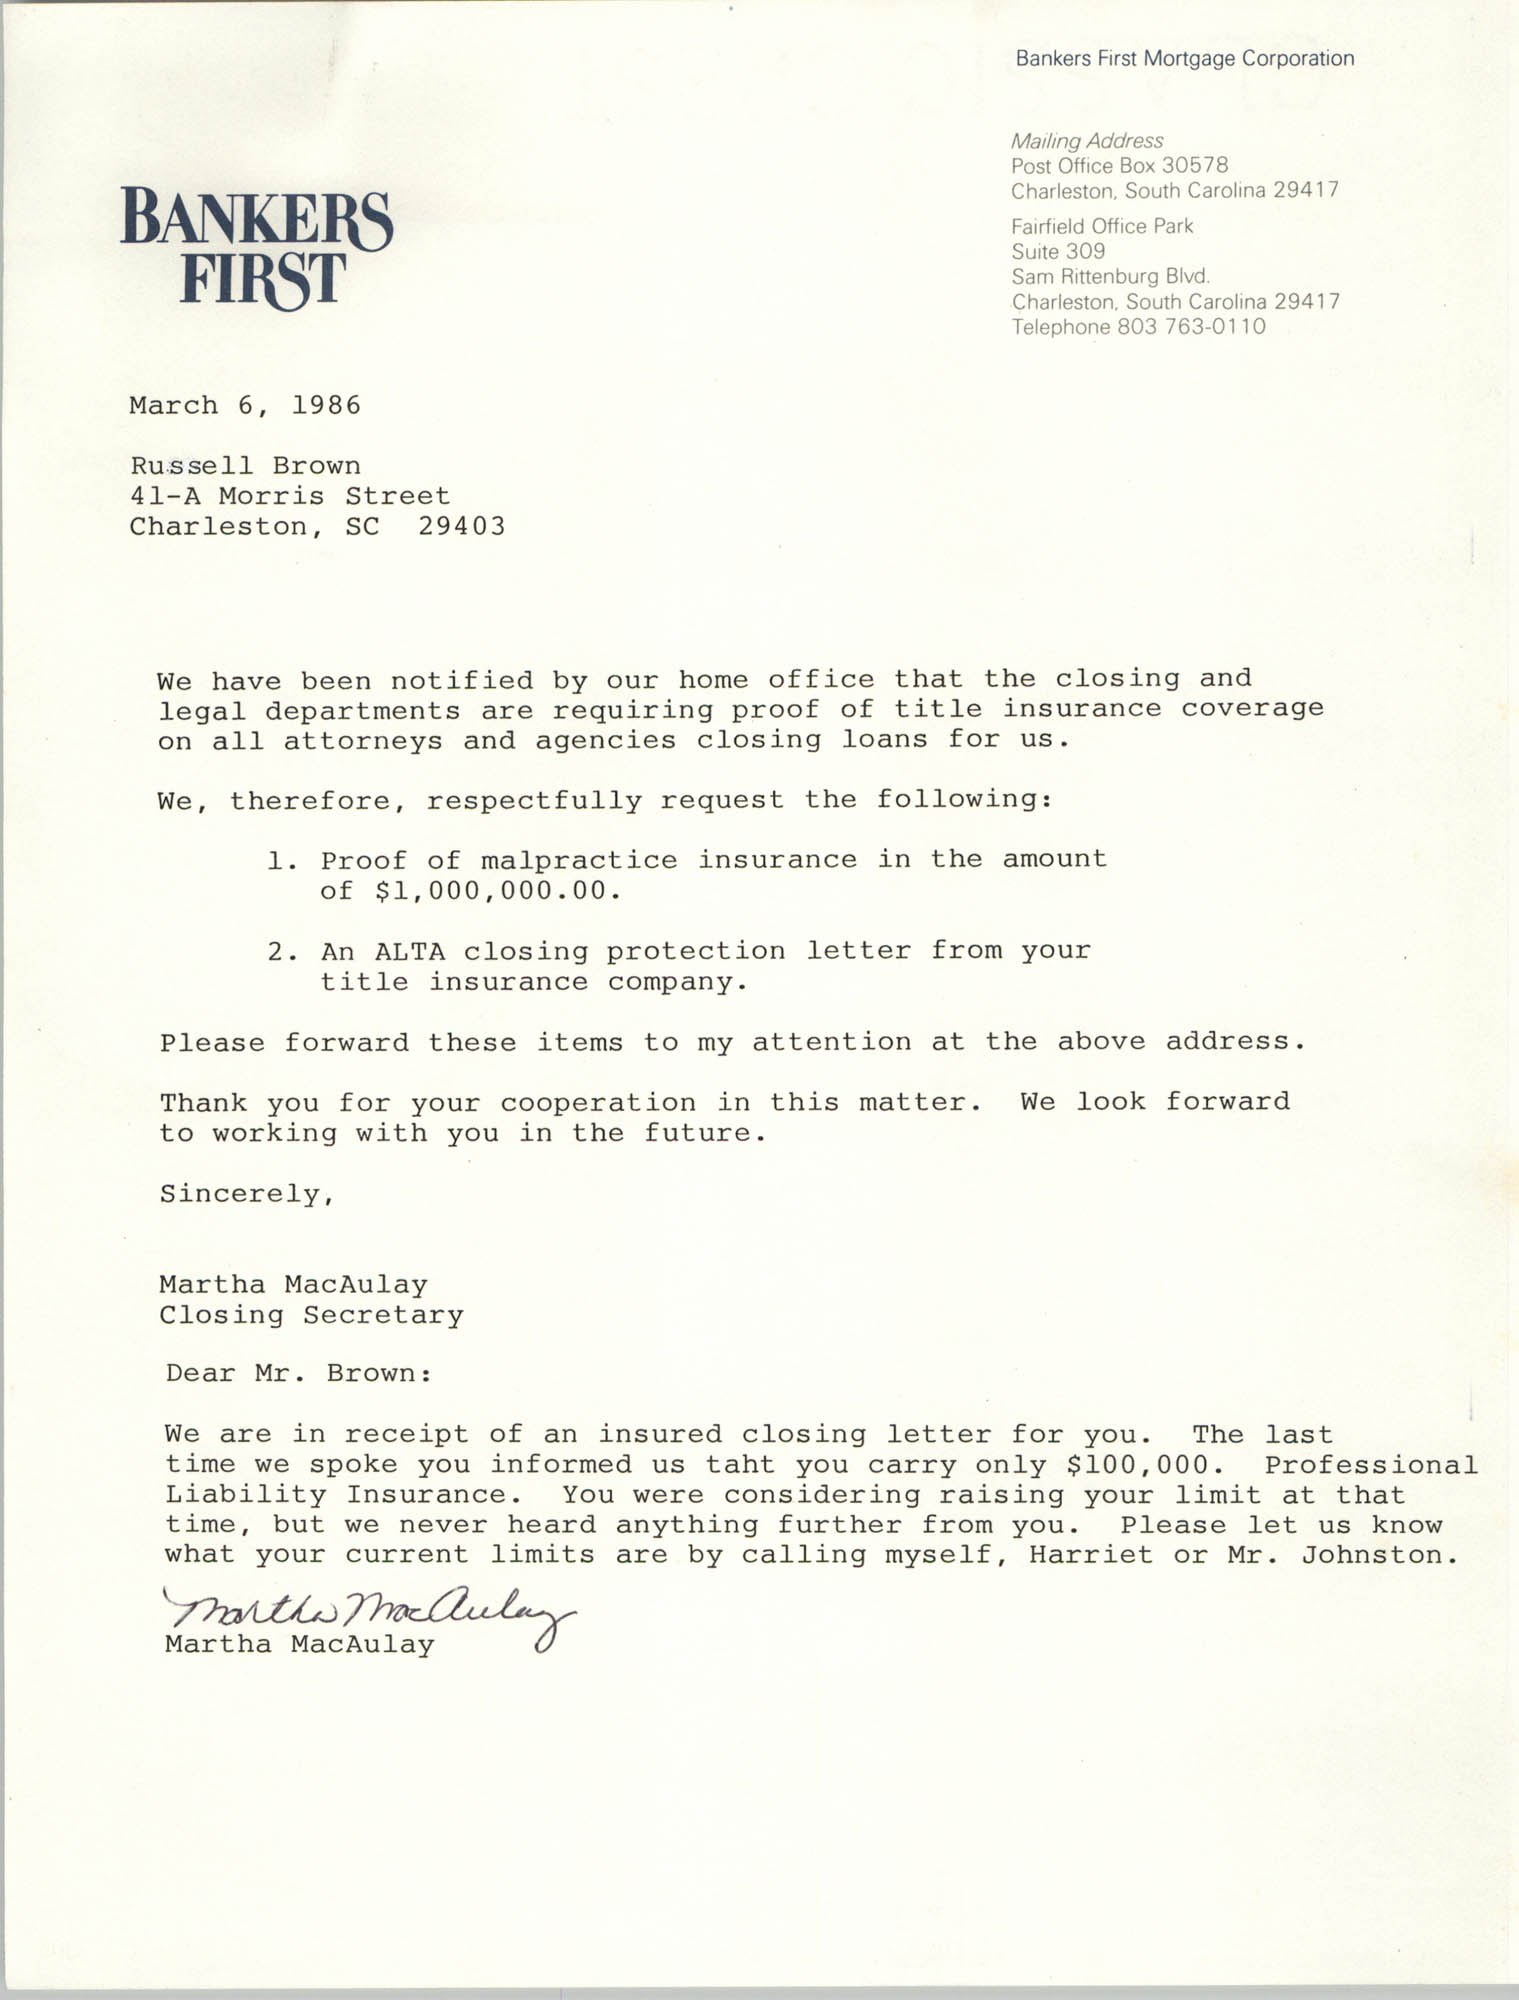 Letter from Martha MacAulay to Russell Brown,  March 6, 1986